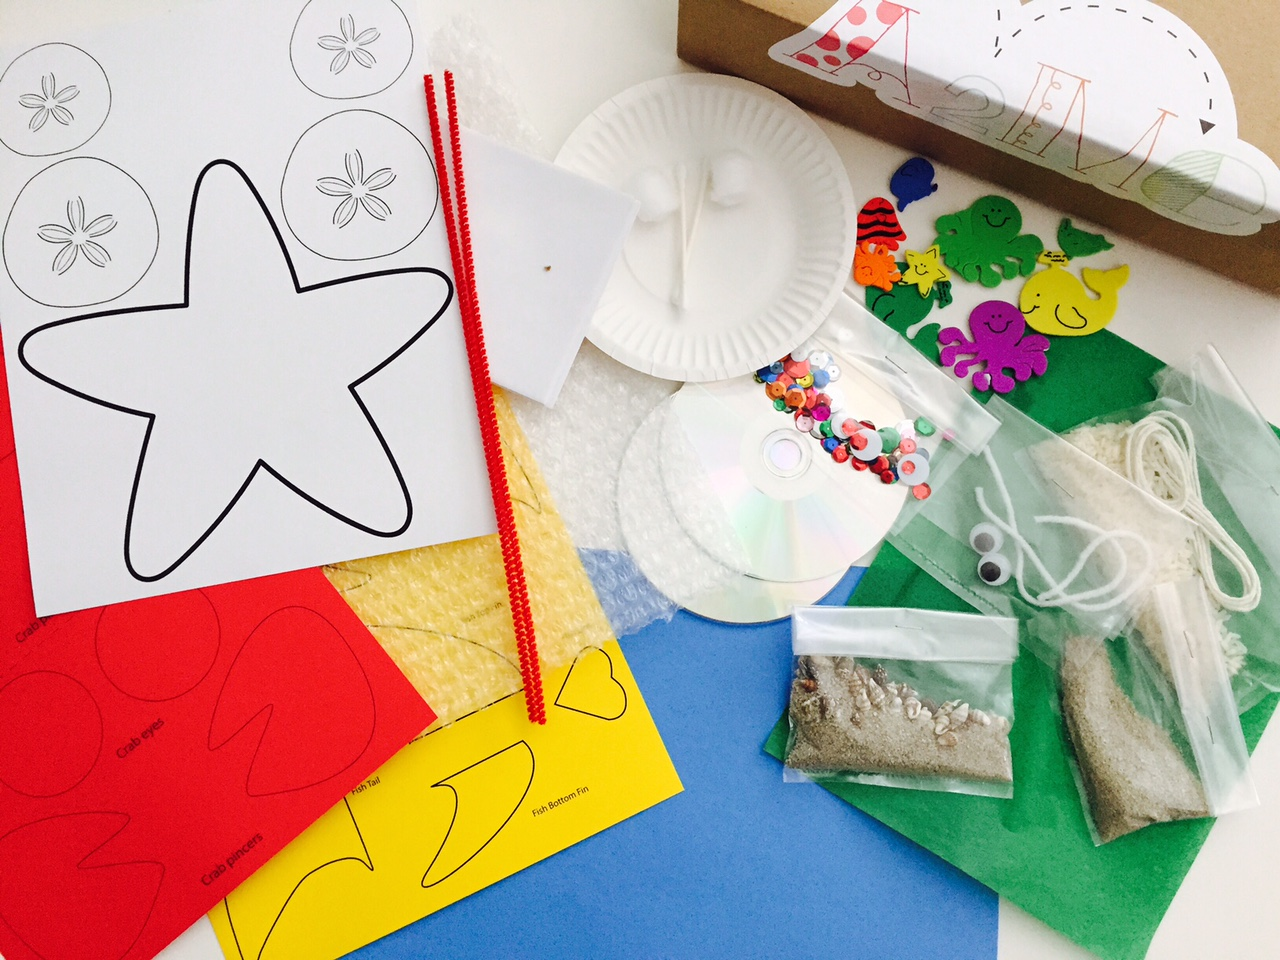 A2me Preschool Announces Curated Craft Kits For